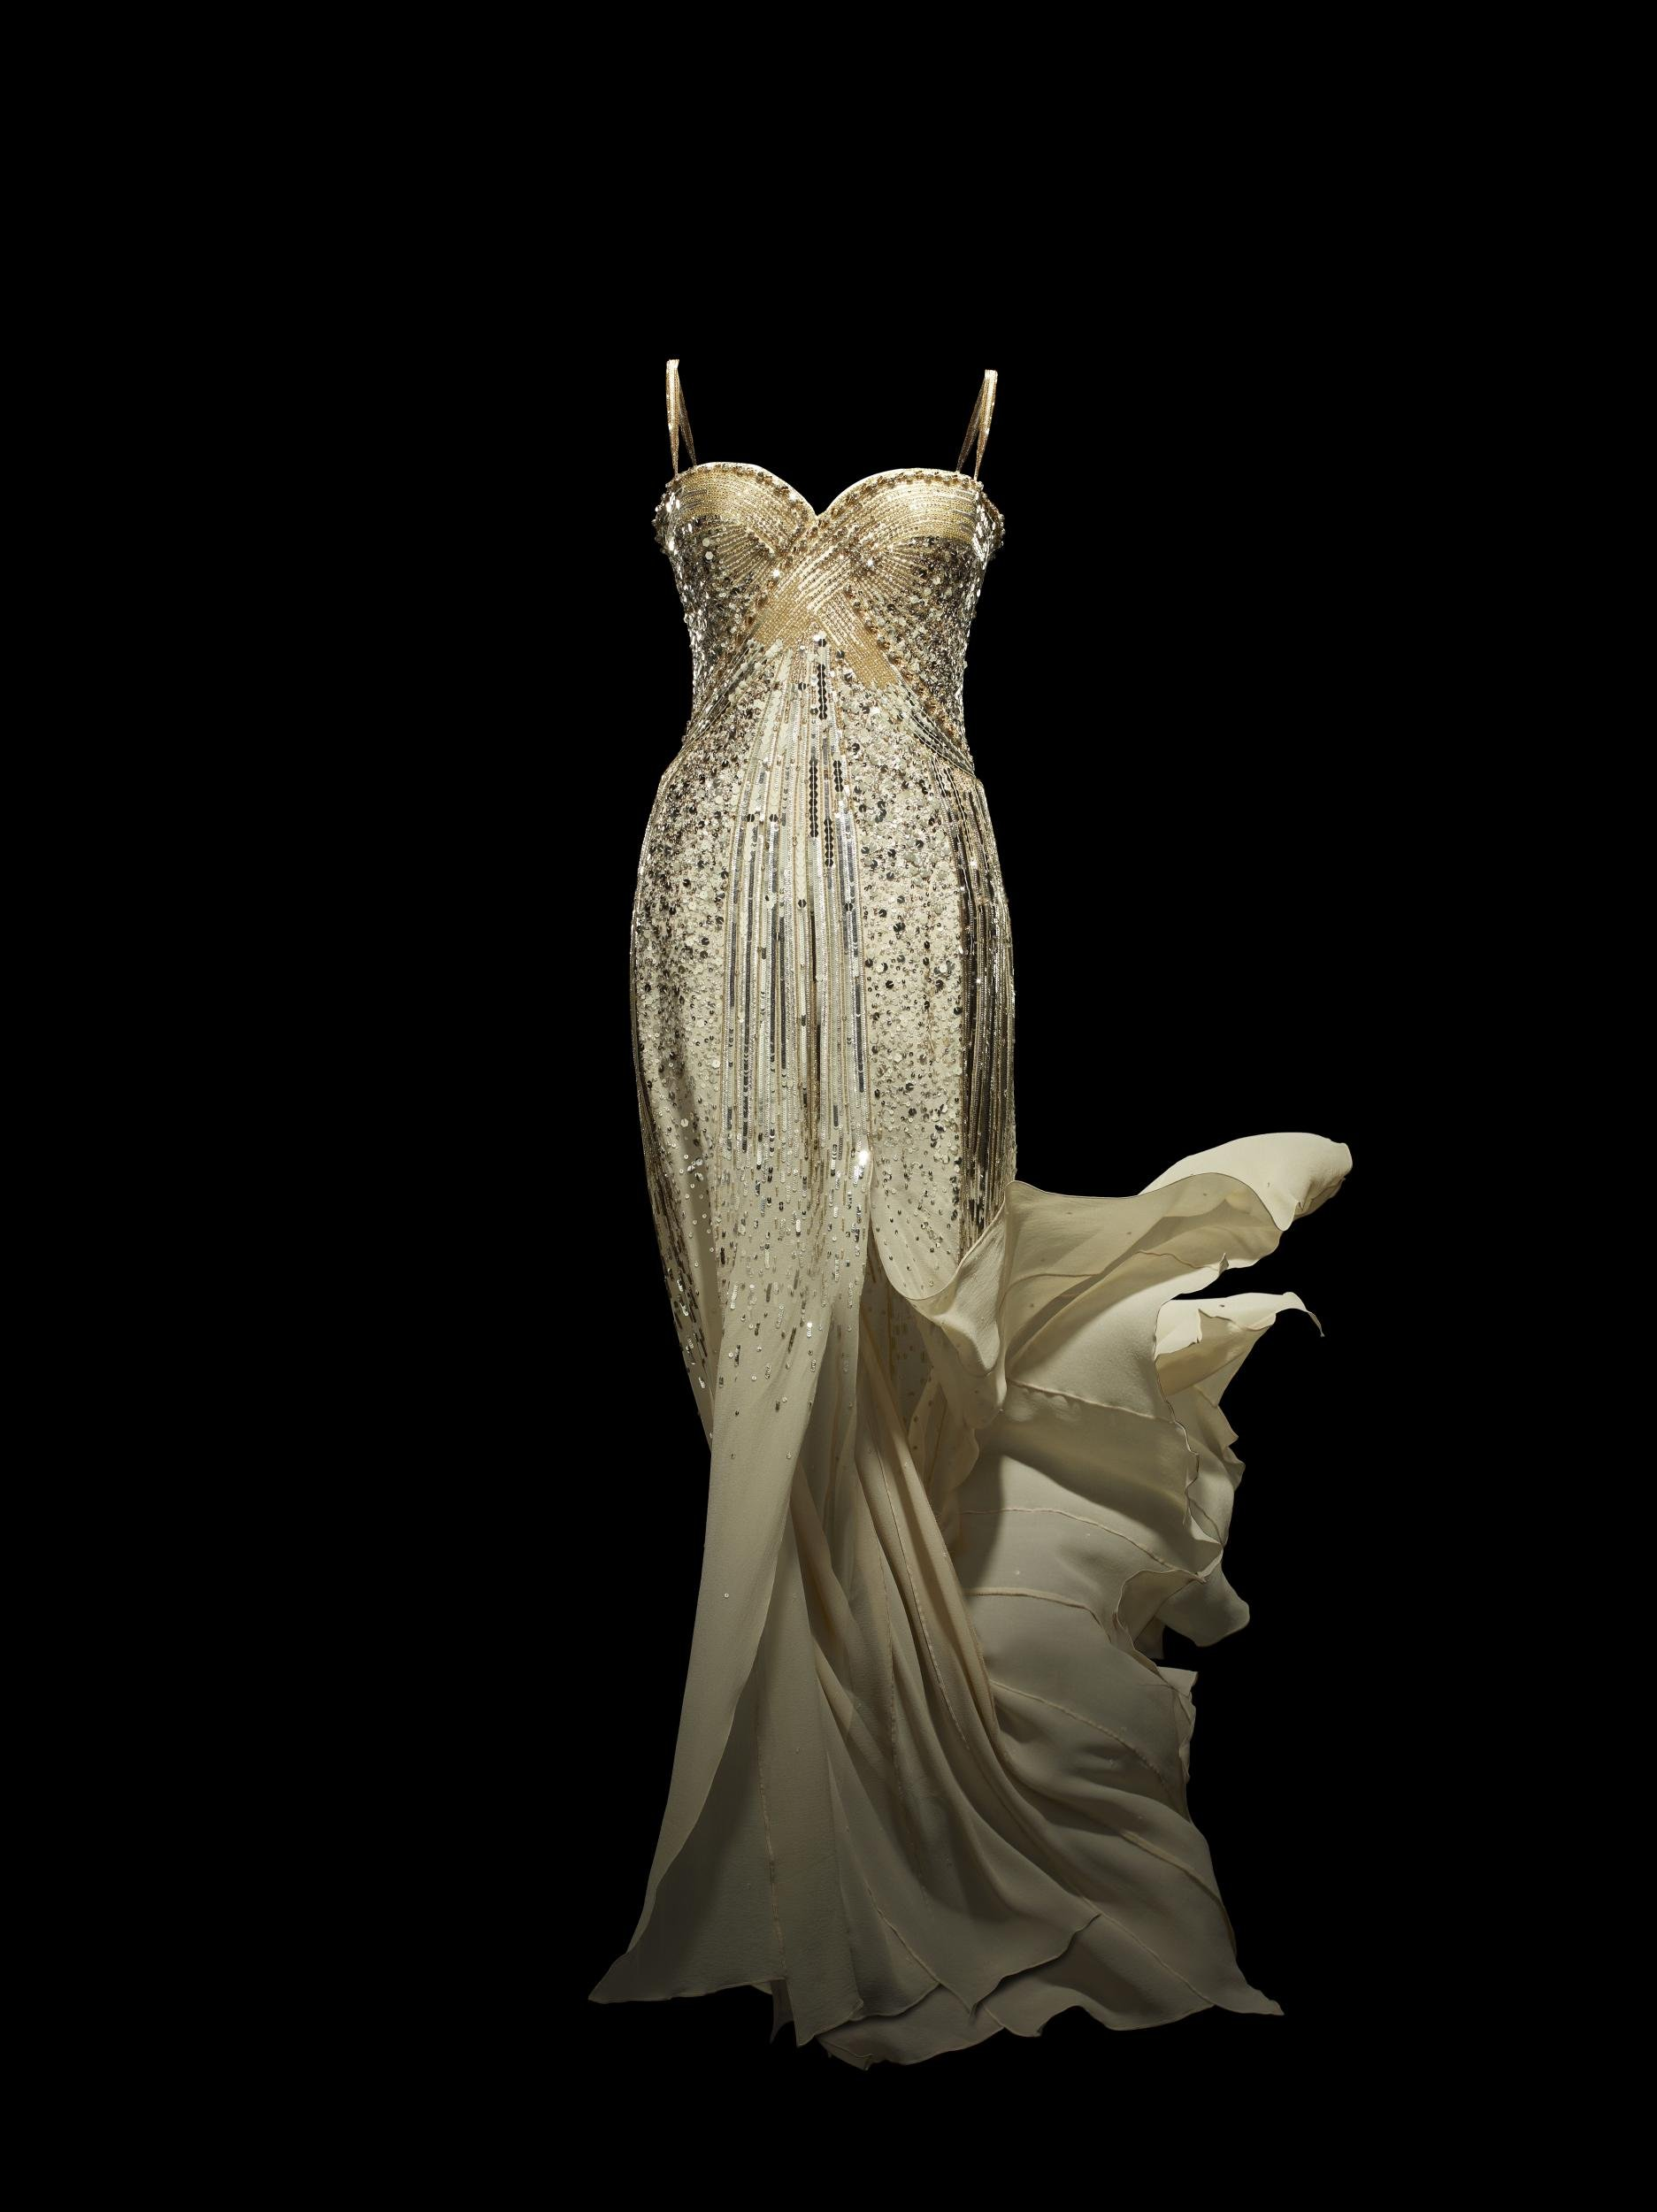 christian dior by john galliano jadore dress haute couture 2008 custom made photo c laziz hamani. christian dior parfums collection paris